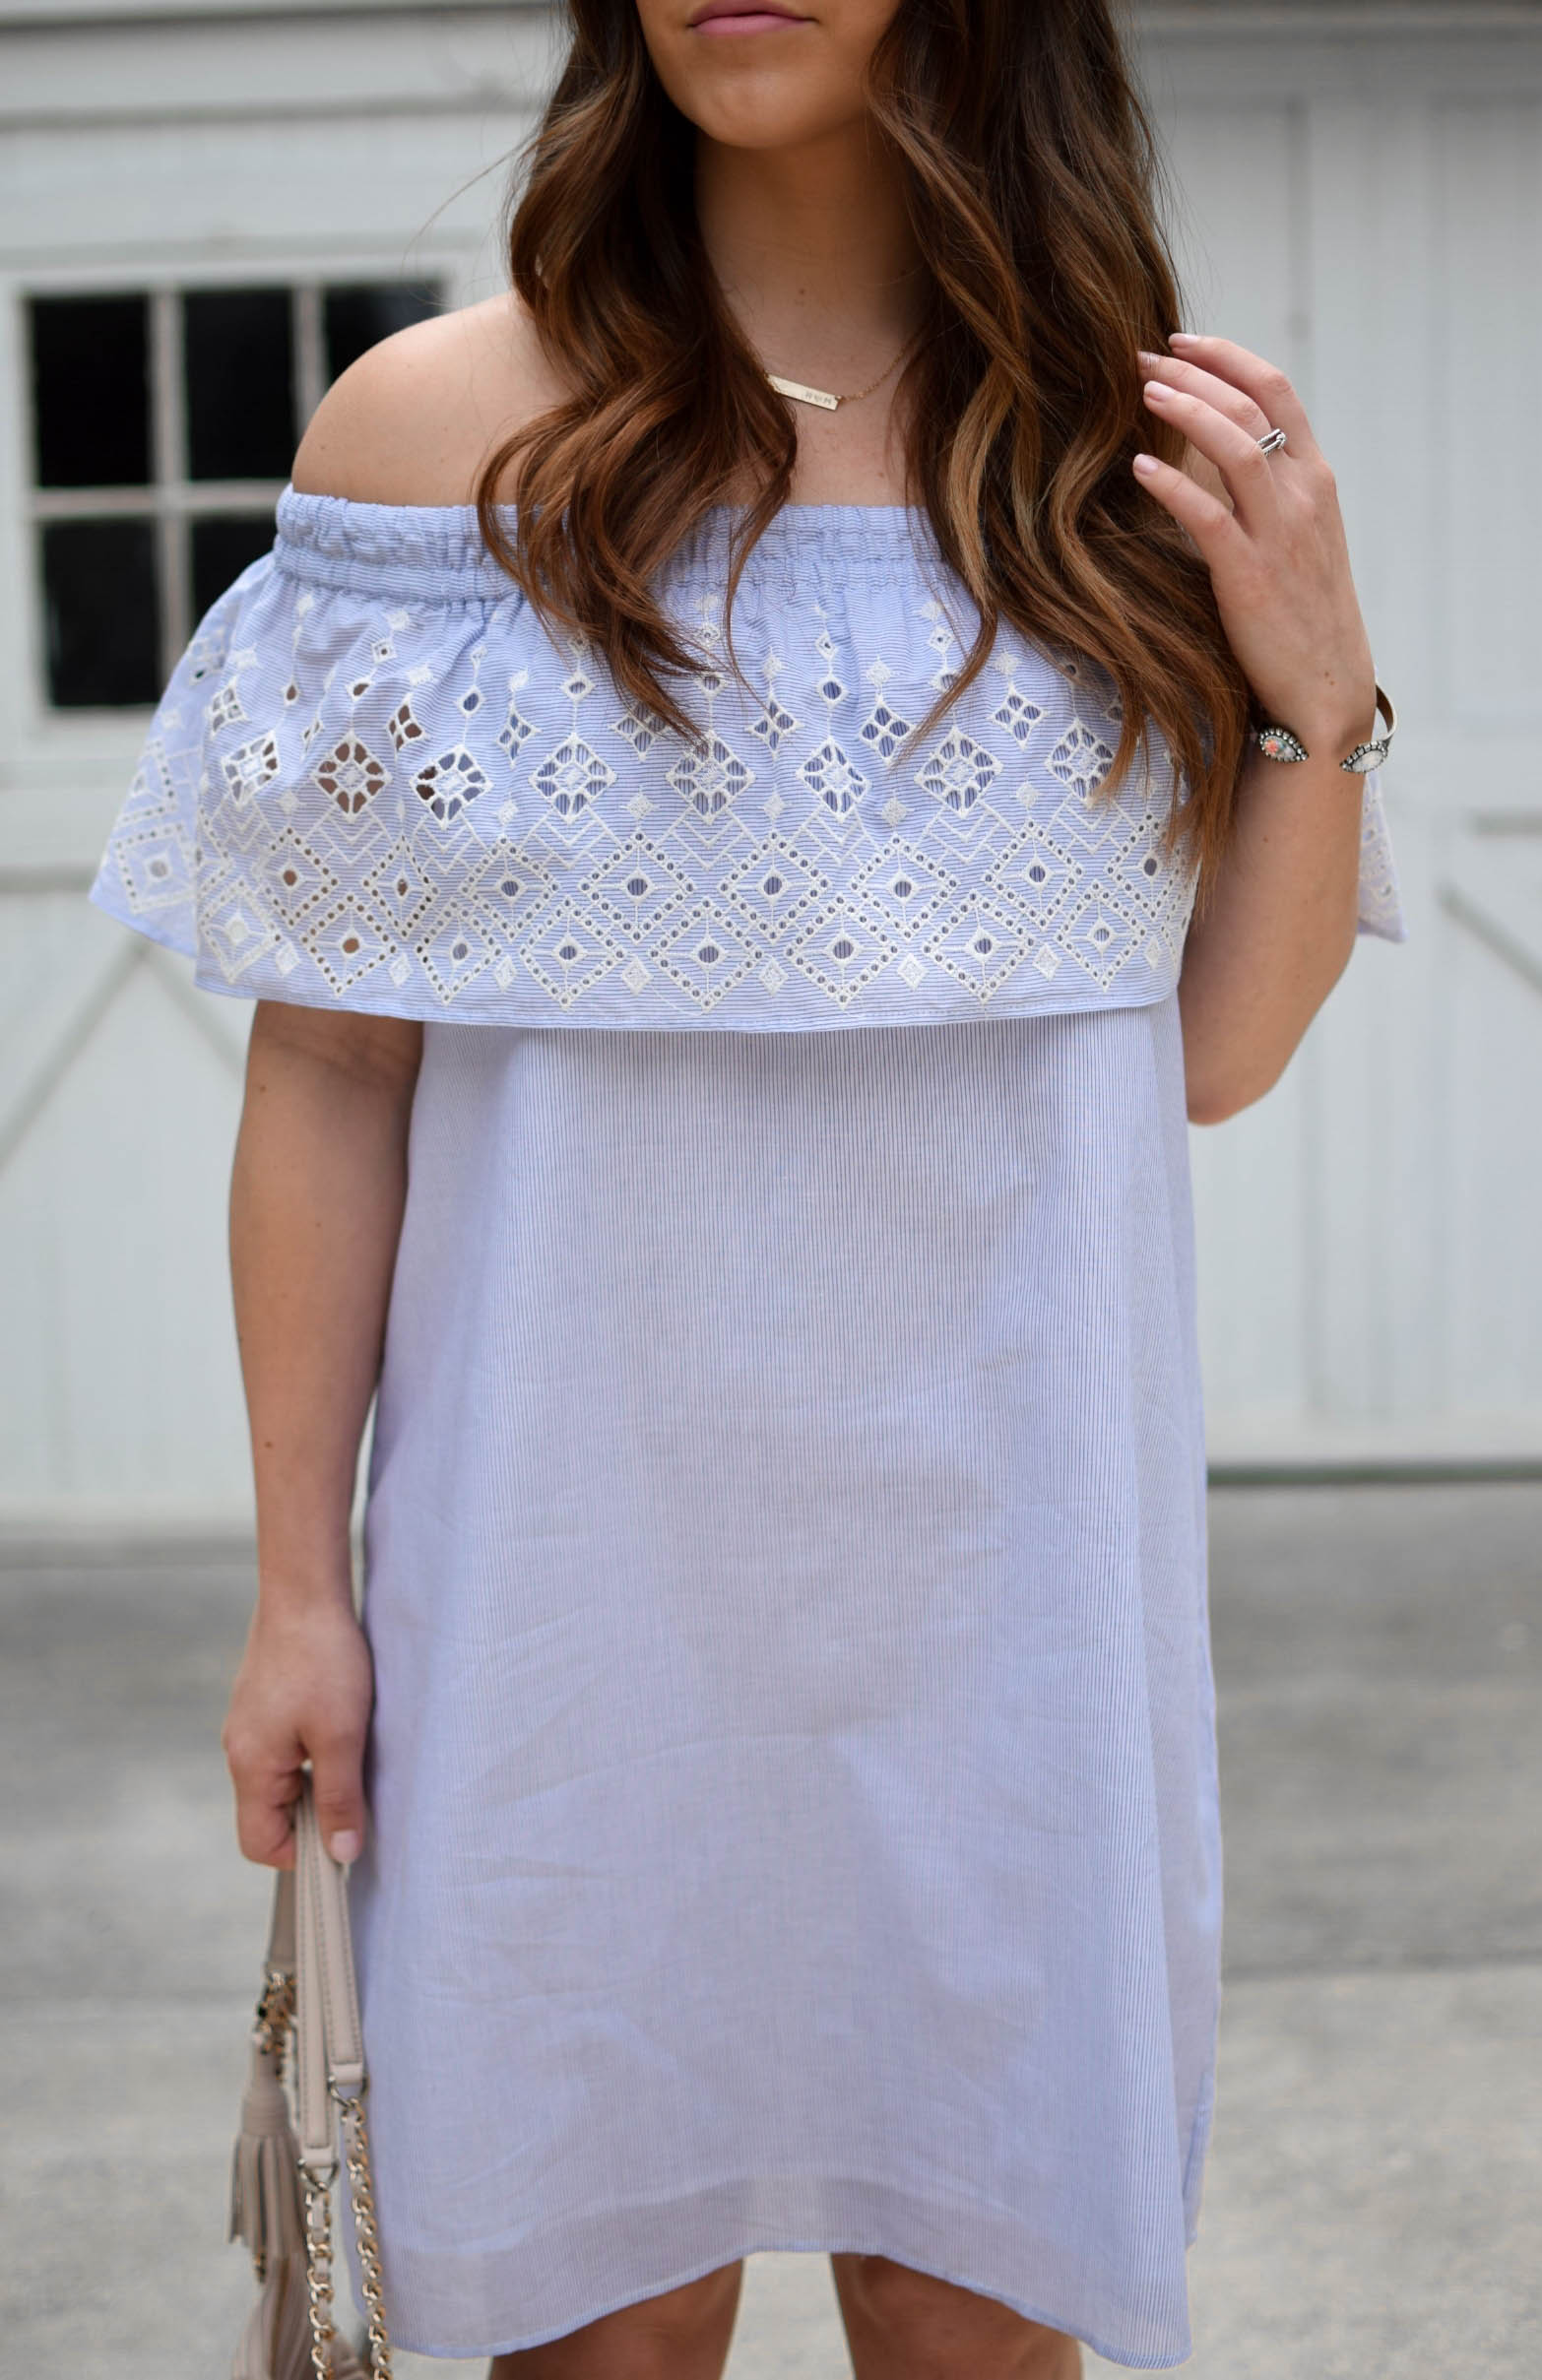 summer outfit idea / eyelet dress / sun dress